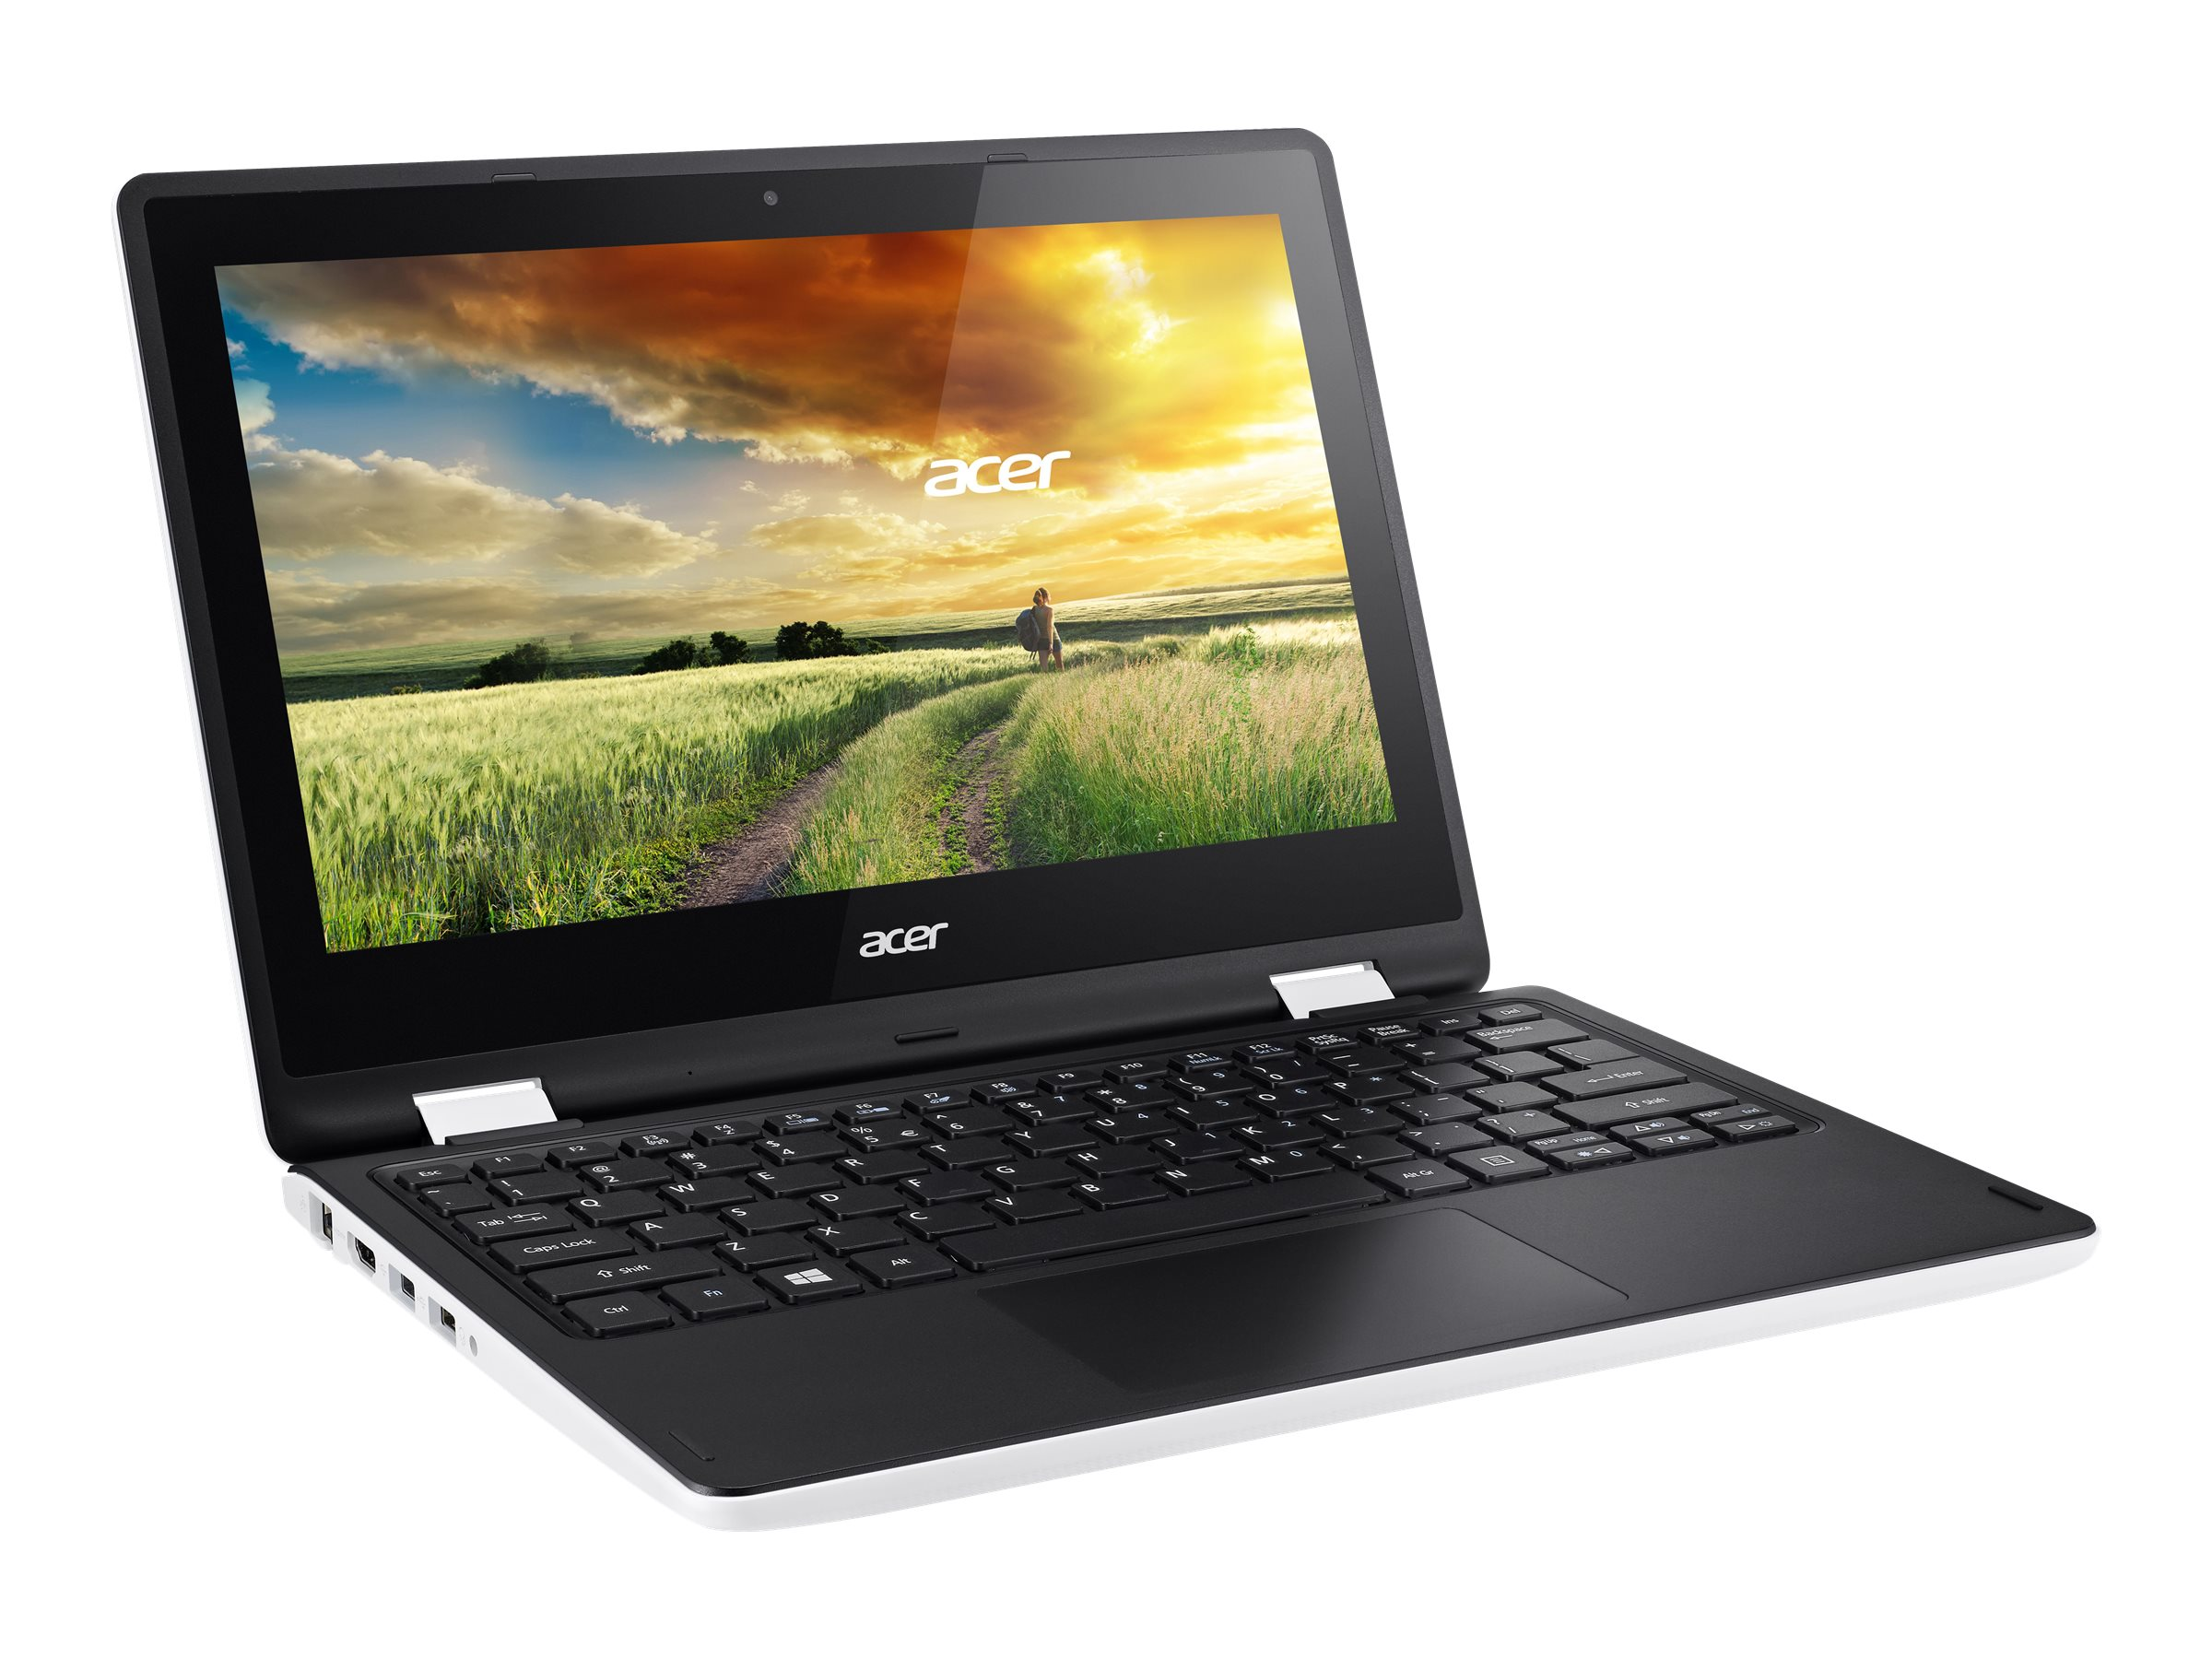 Acer NX.G83AA.005 Image 3